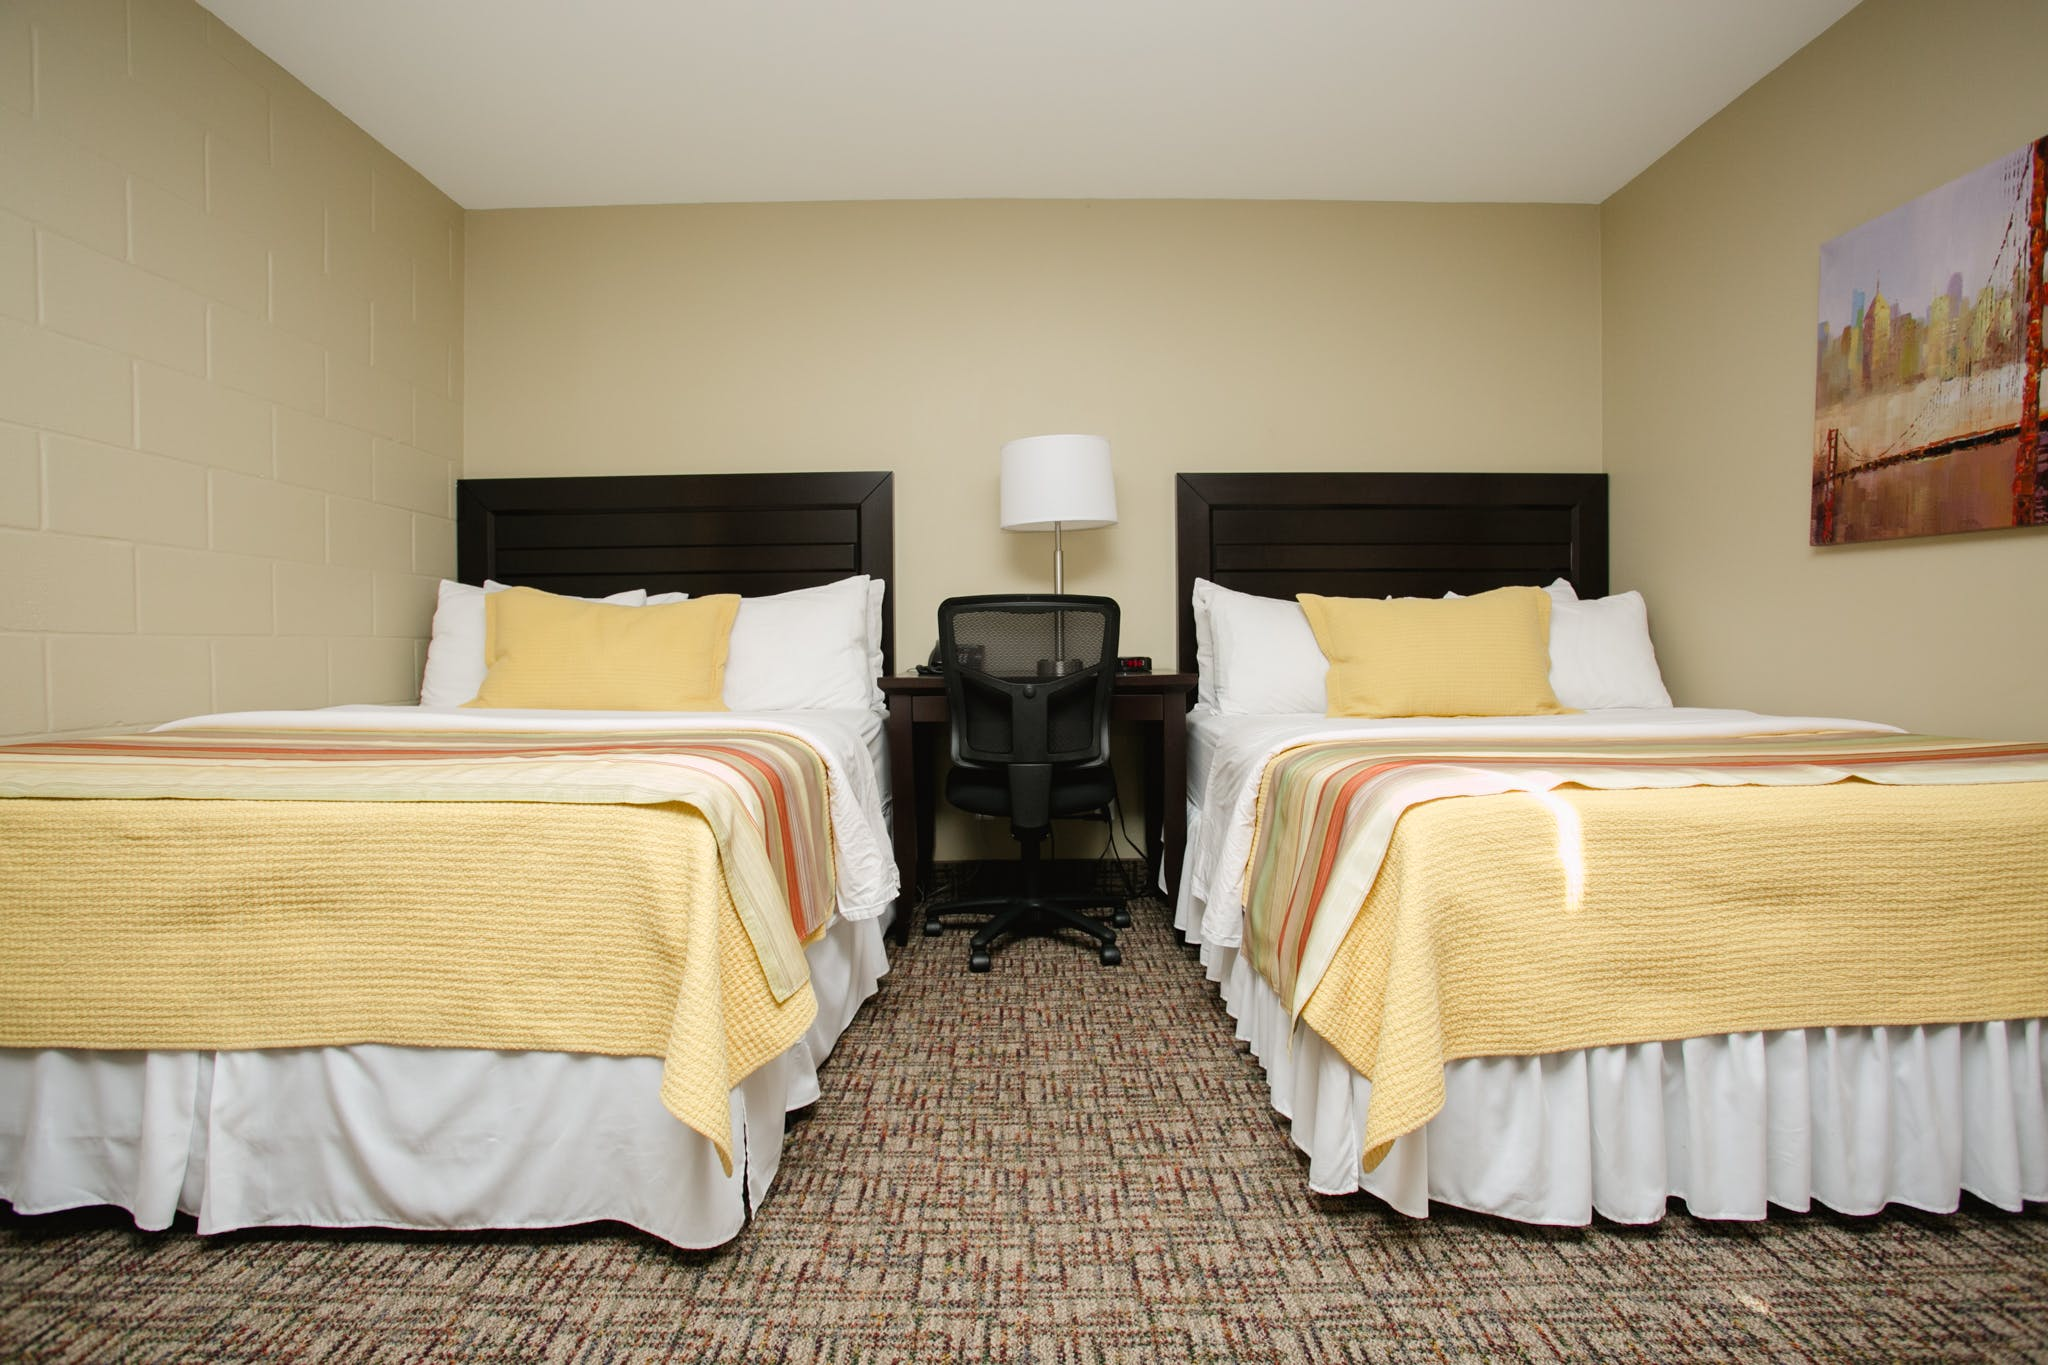 Hotel Room 325 Scott St, Fort Frances, ON P9A 1H1, Canada Phone: +1 807-274-5500